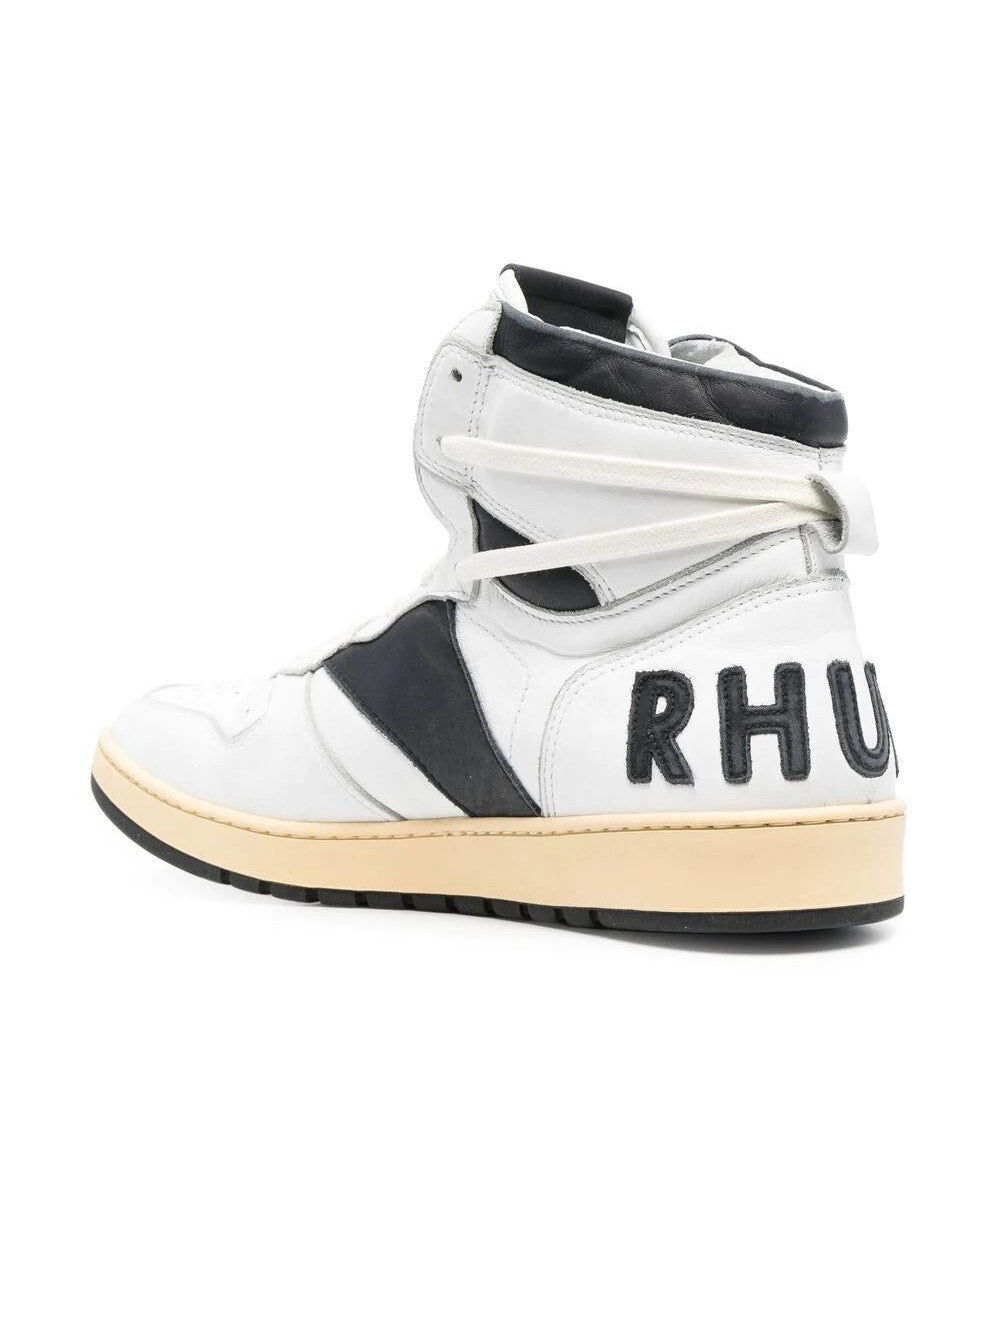 White & Black Rhecess High Top Sneakers